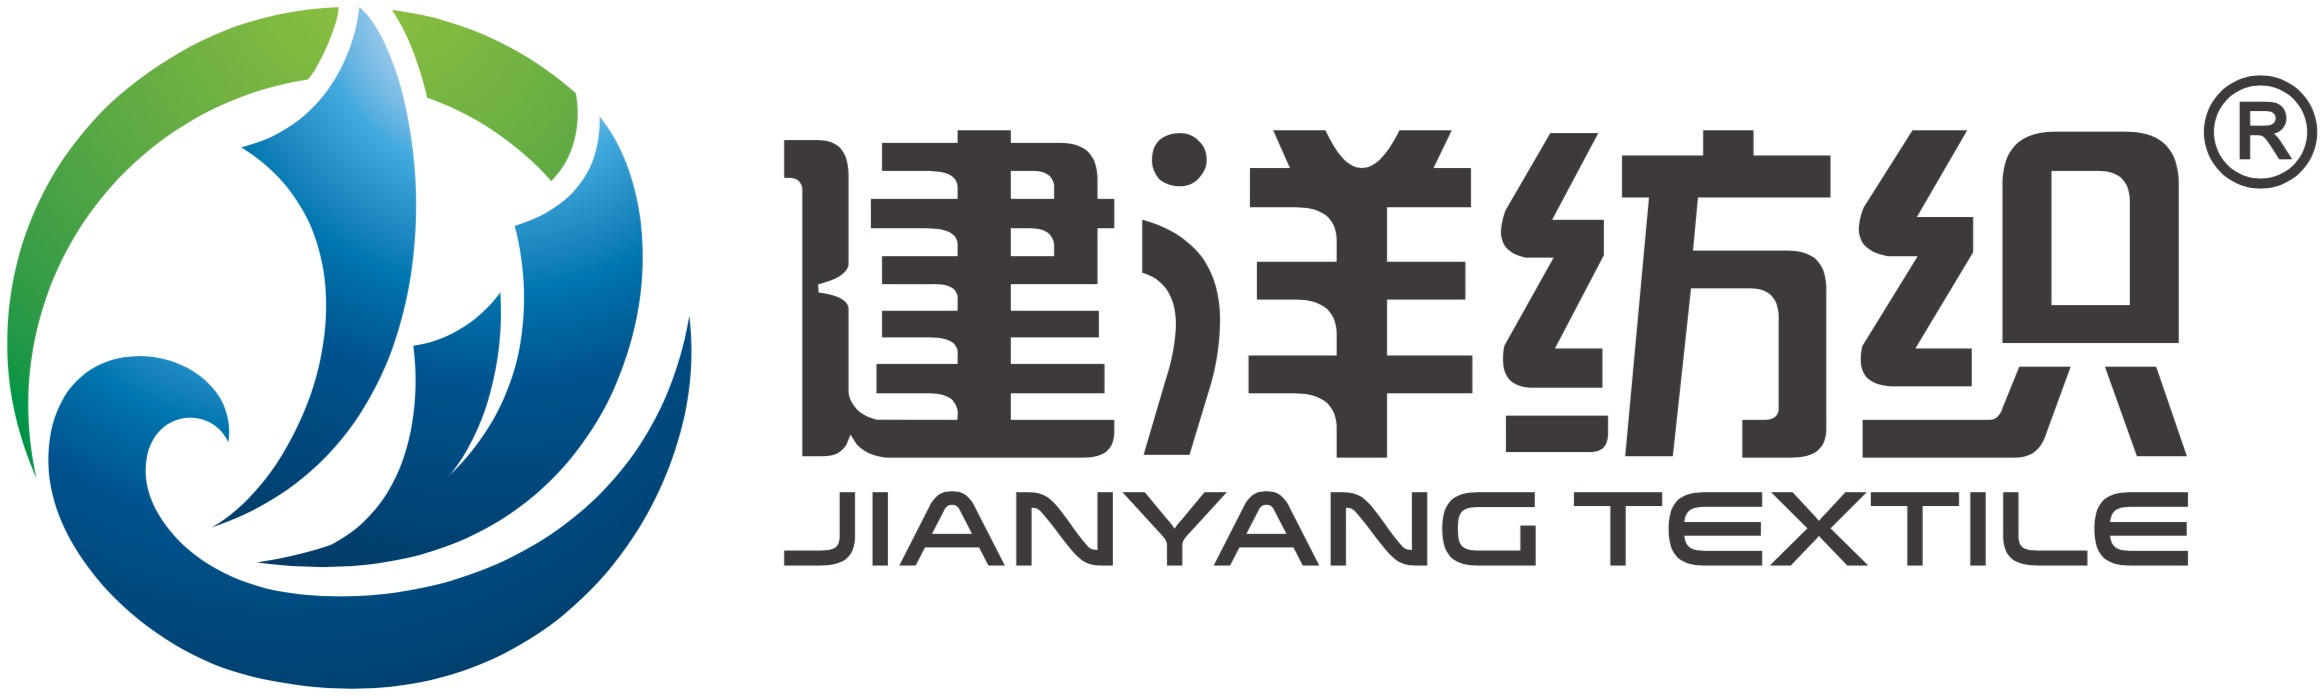 Shanghai Jianyang Textile Science & Technology Co., Ltd.